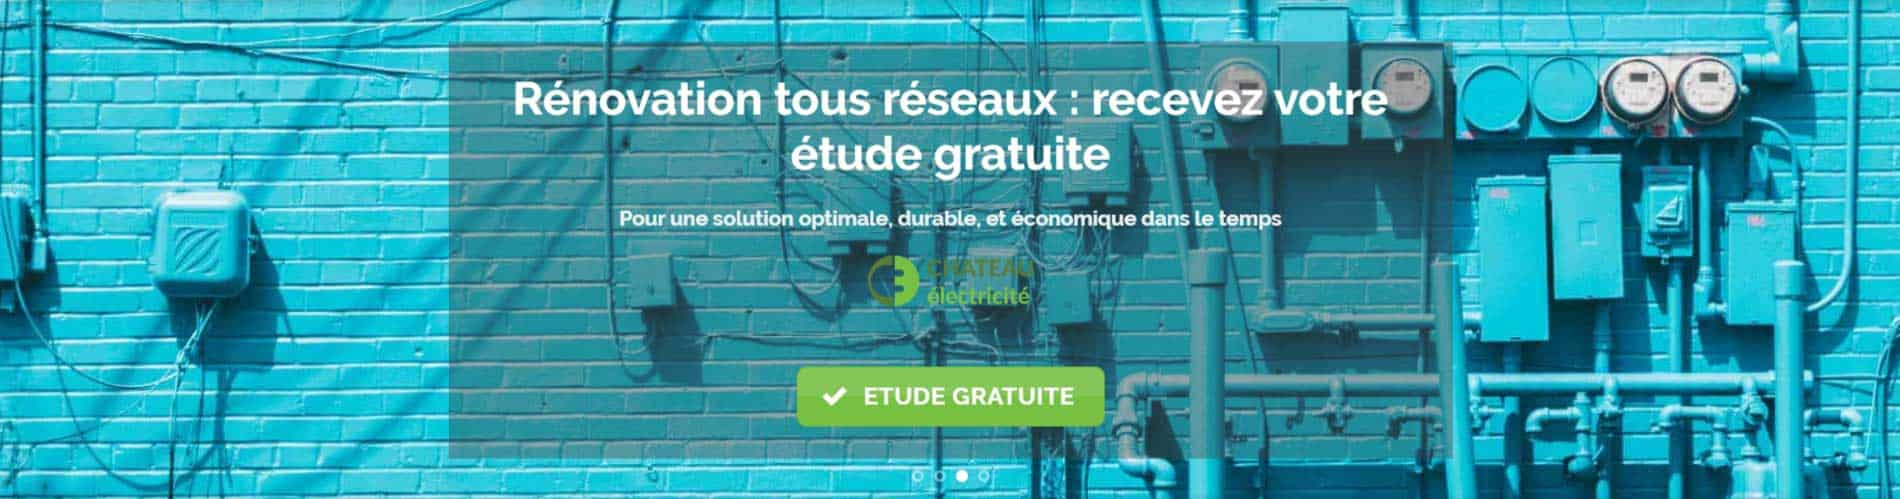 promotion rénovation sur site internet